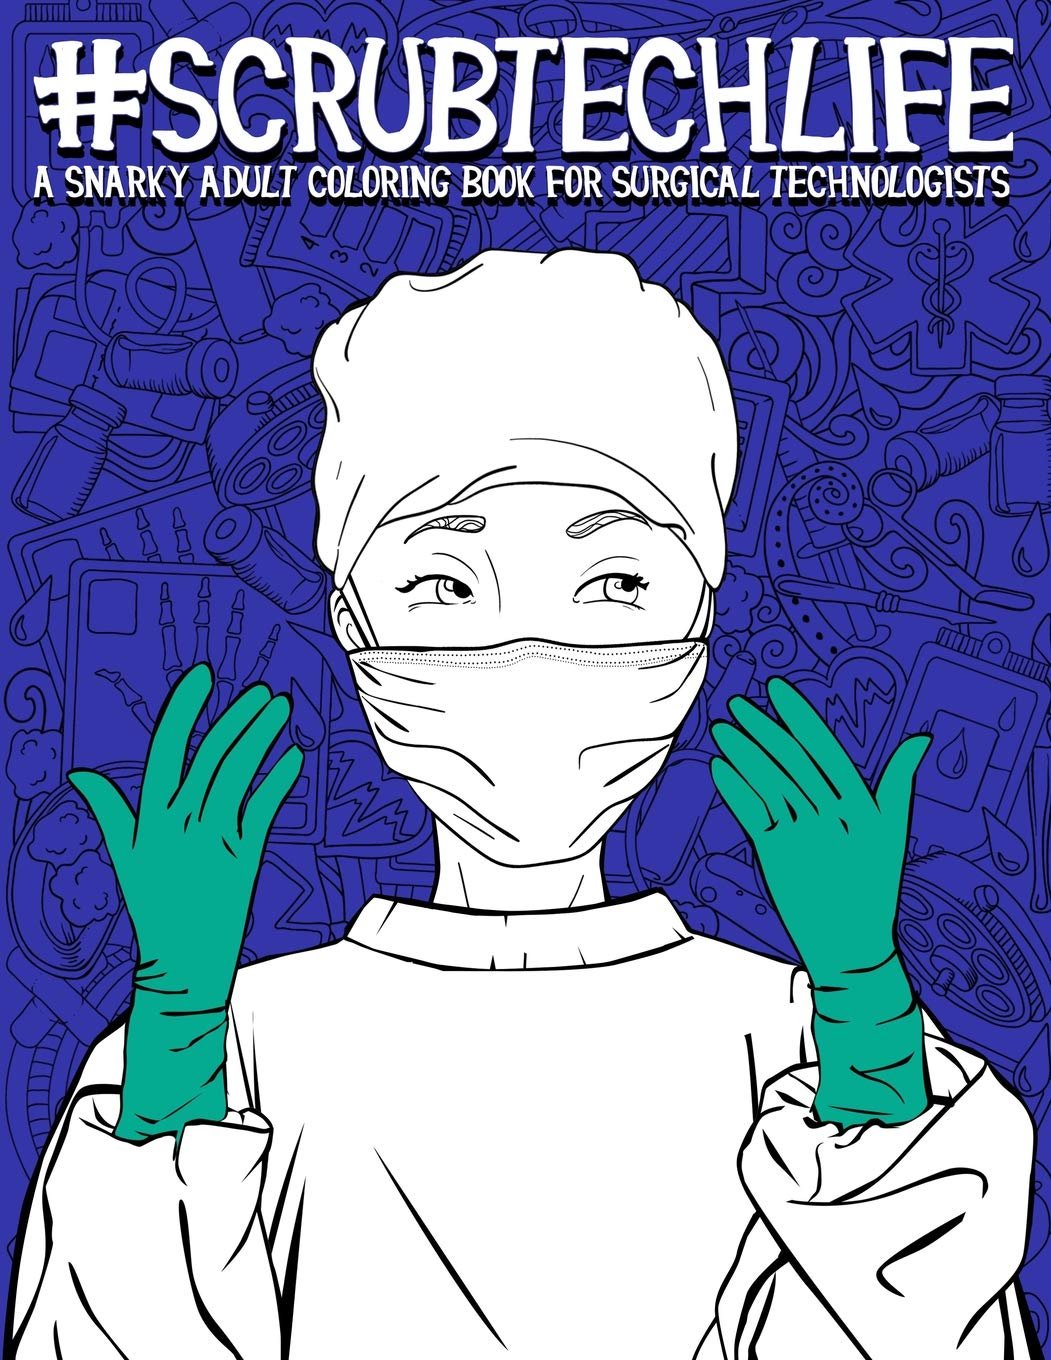 scrub tech life a snarky adult coloring book for surgical technologists a funny coloring book for adults for surgical technicians operating room technicians